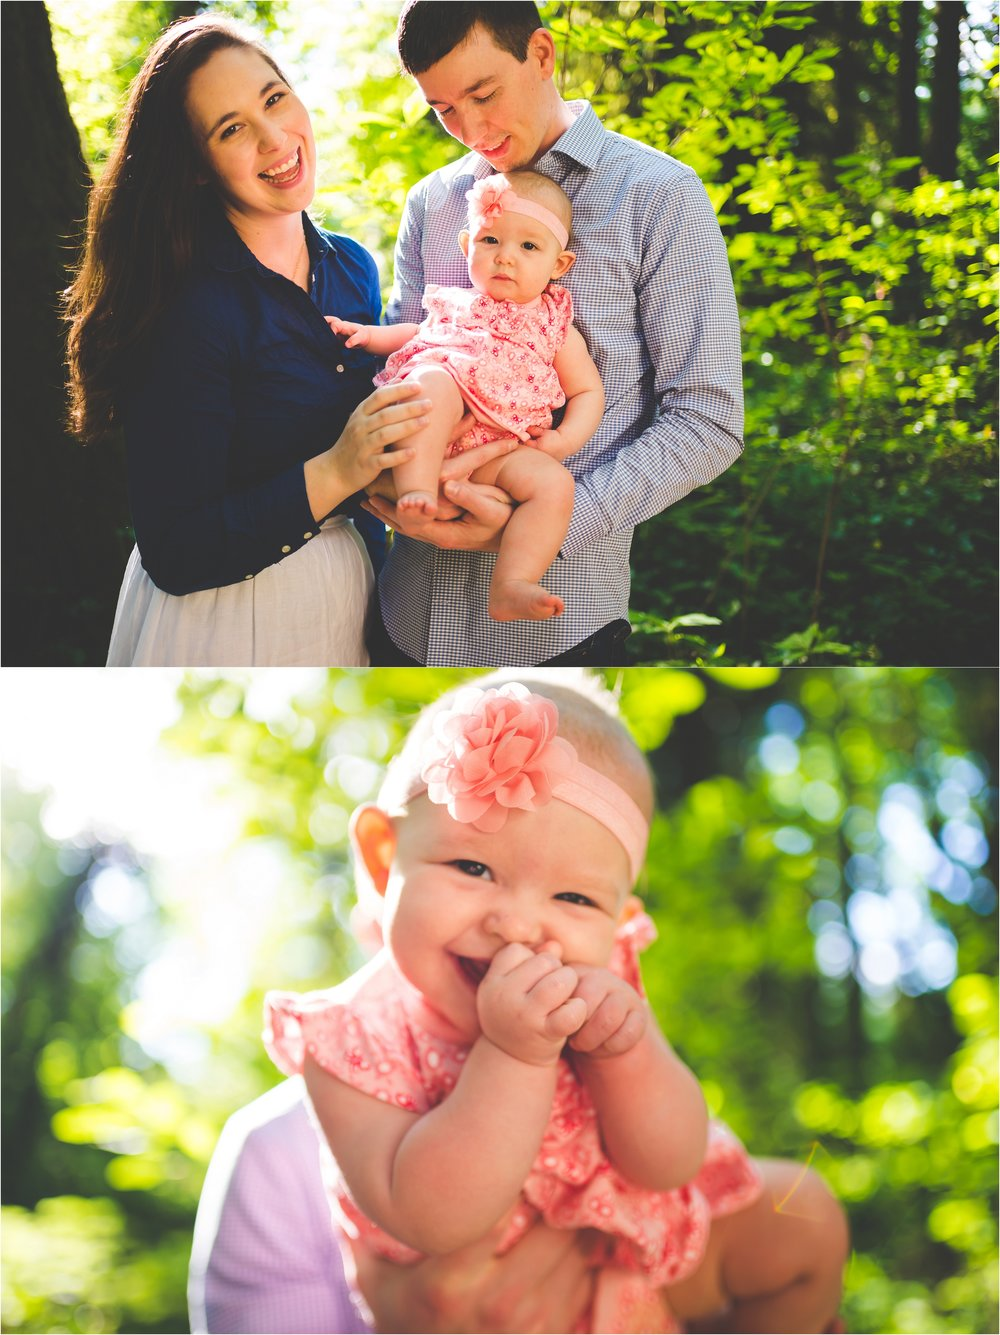 priest-point-park-olympia-wa-family-session-jannicka-mayte-anchorage-alaska-seattle-washington-family-photographer_0030.jpg